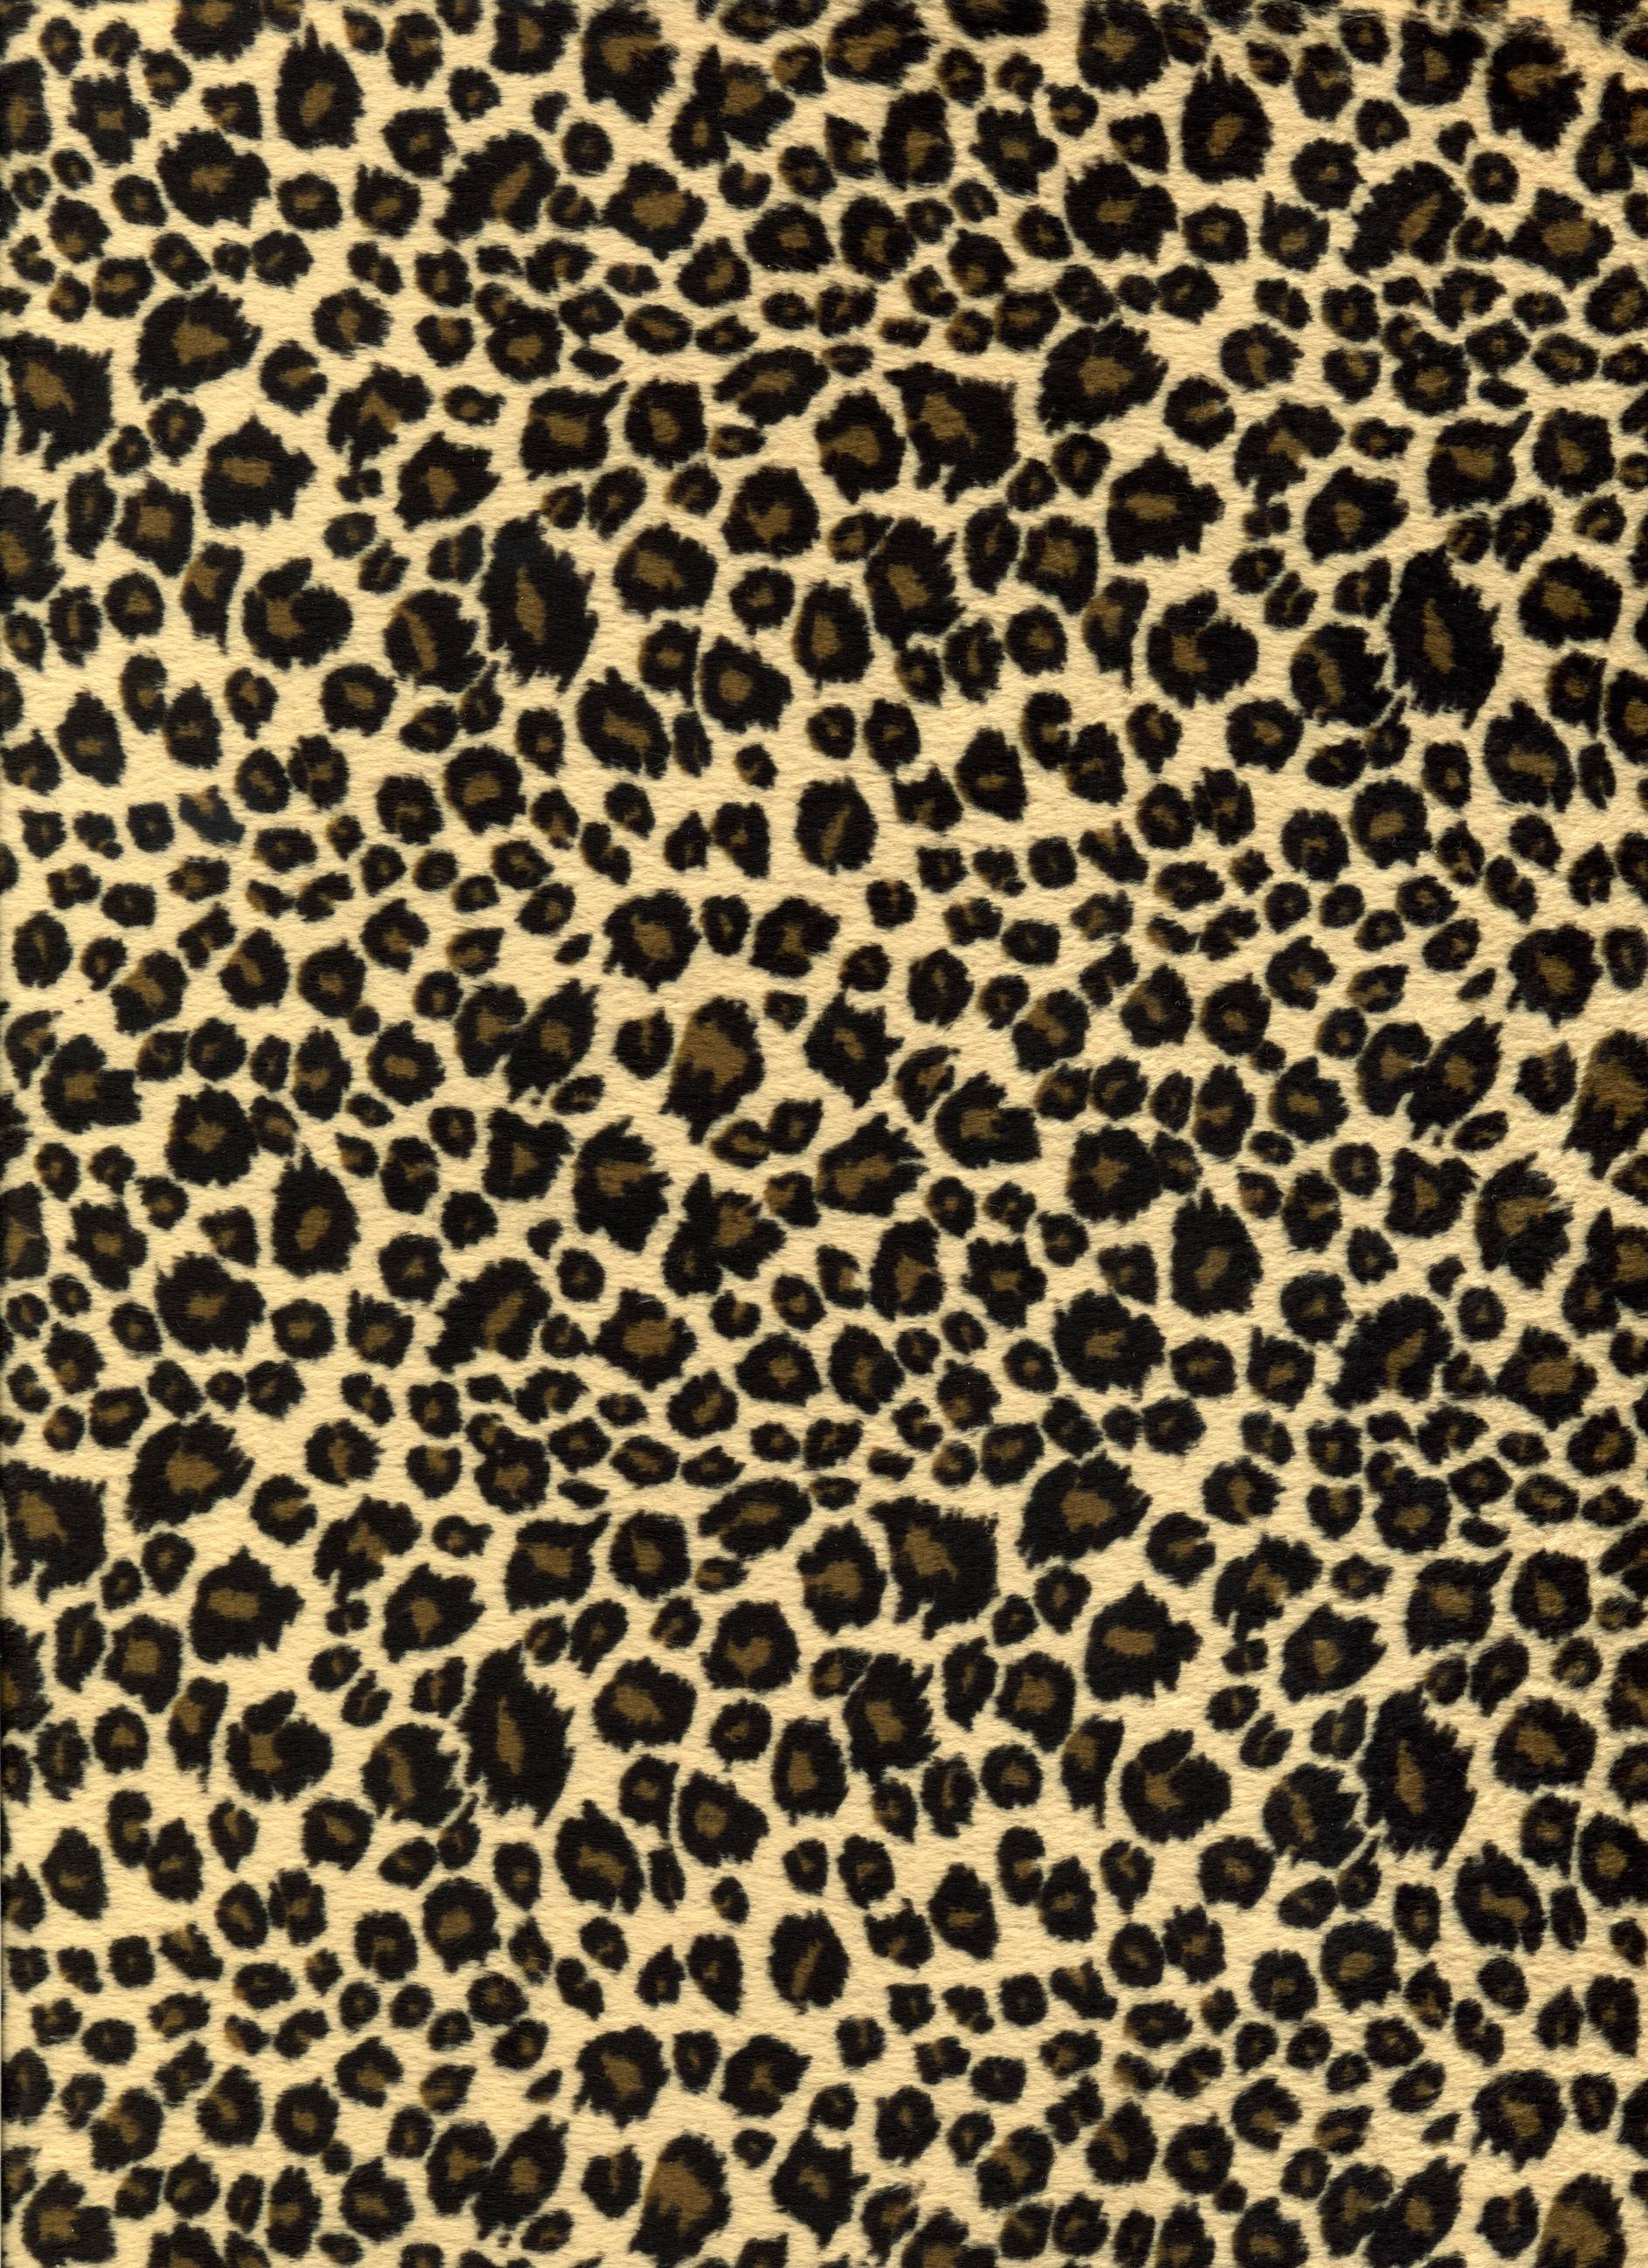 Leopard Print Bedroom Wallpaper Leopard Backgrounds Wallpaper Cave